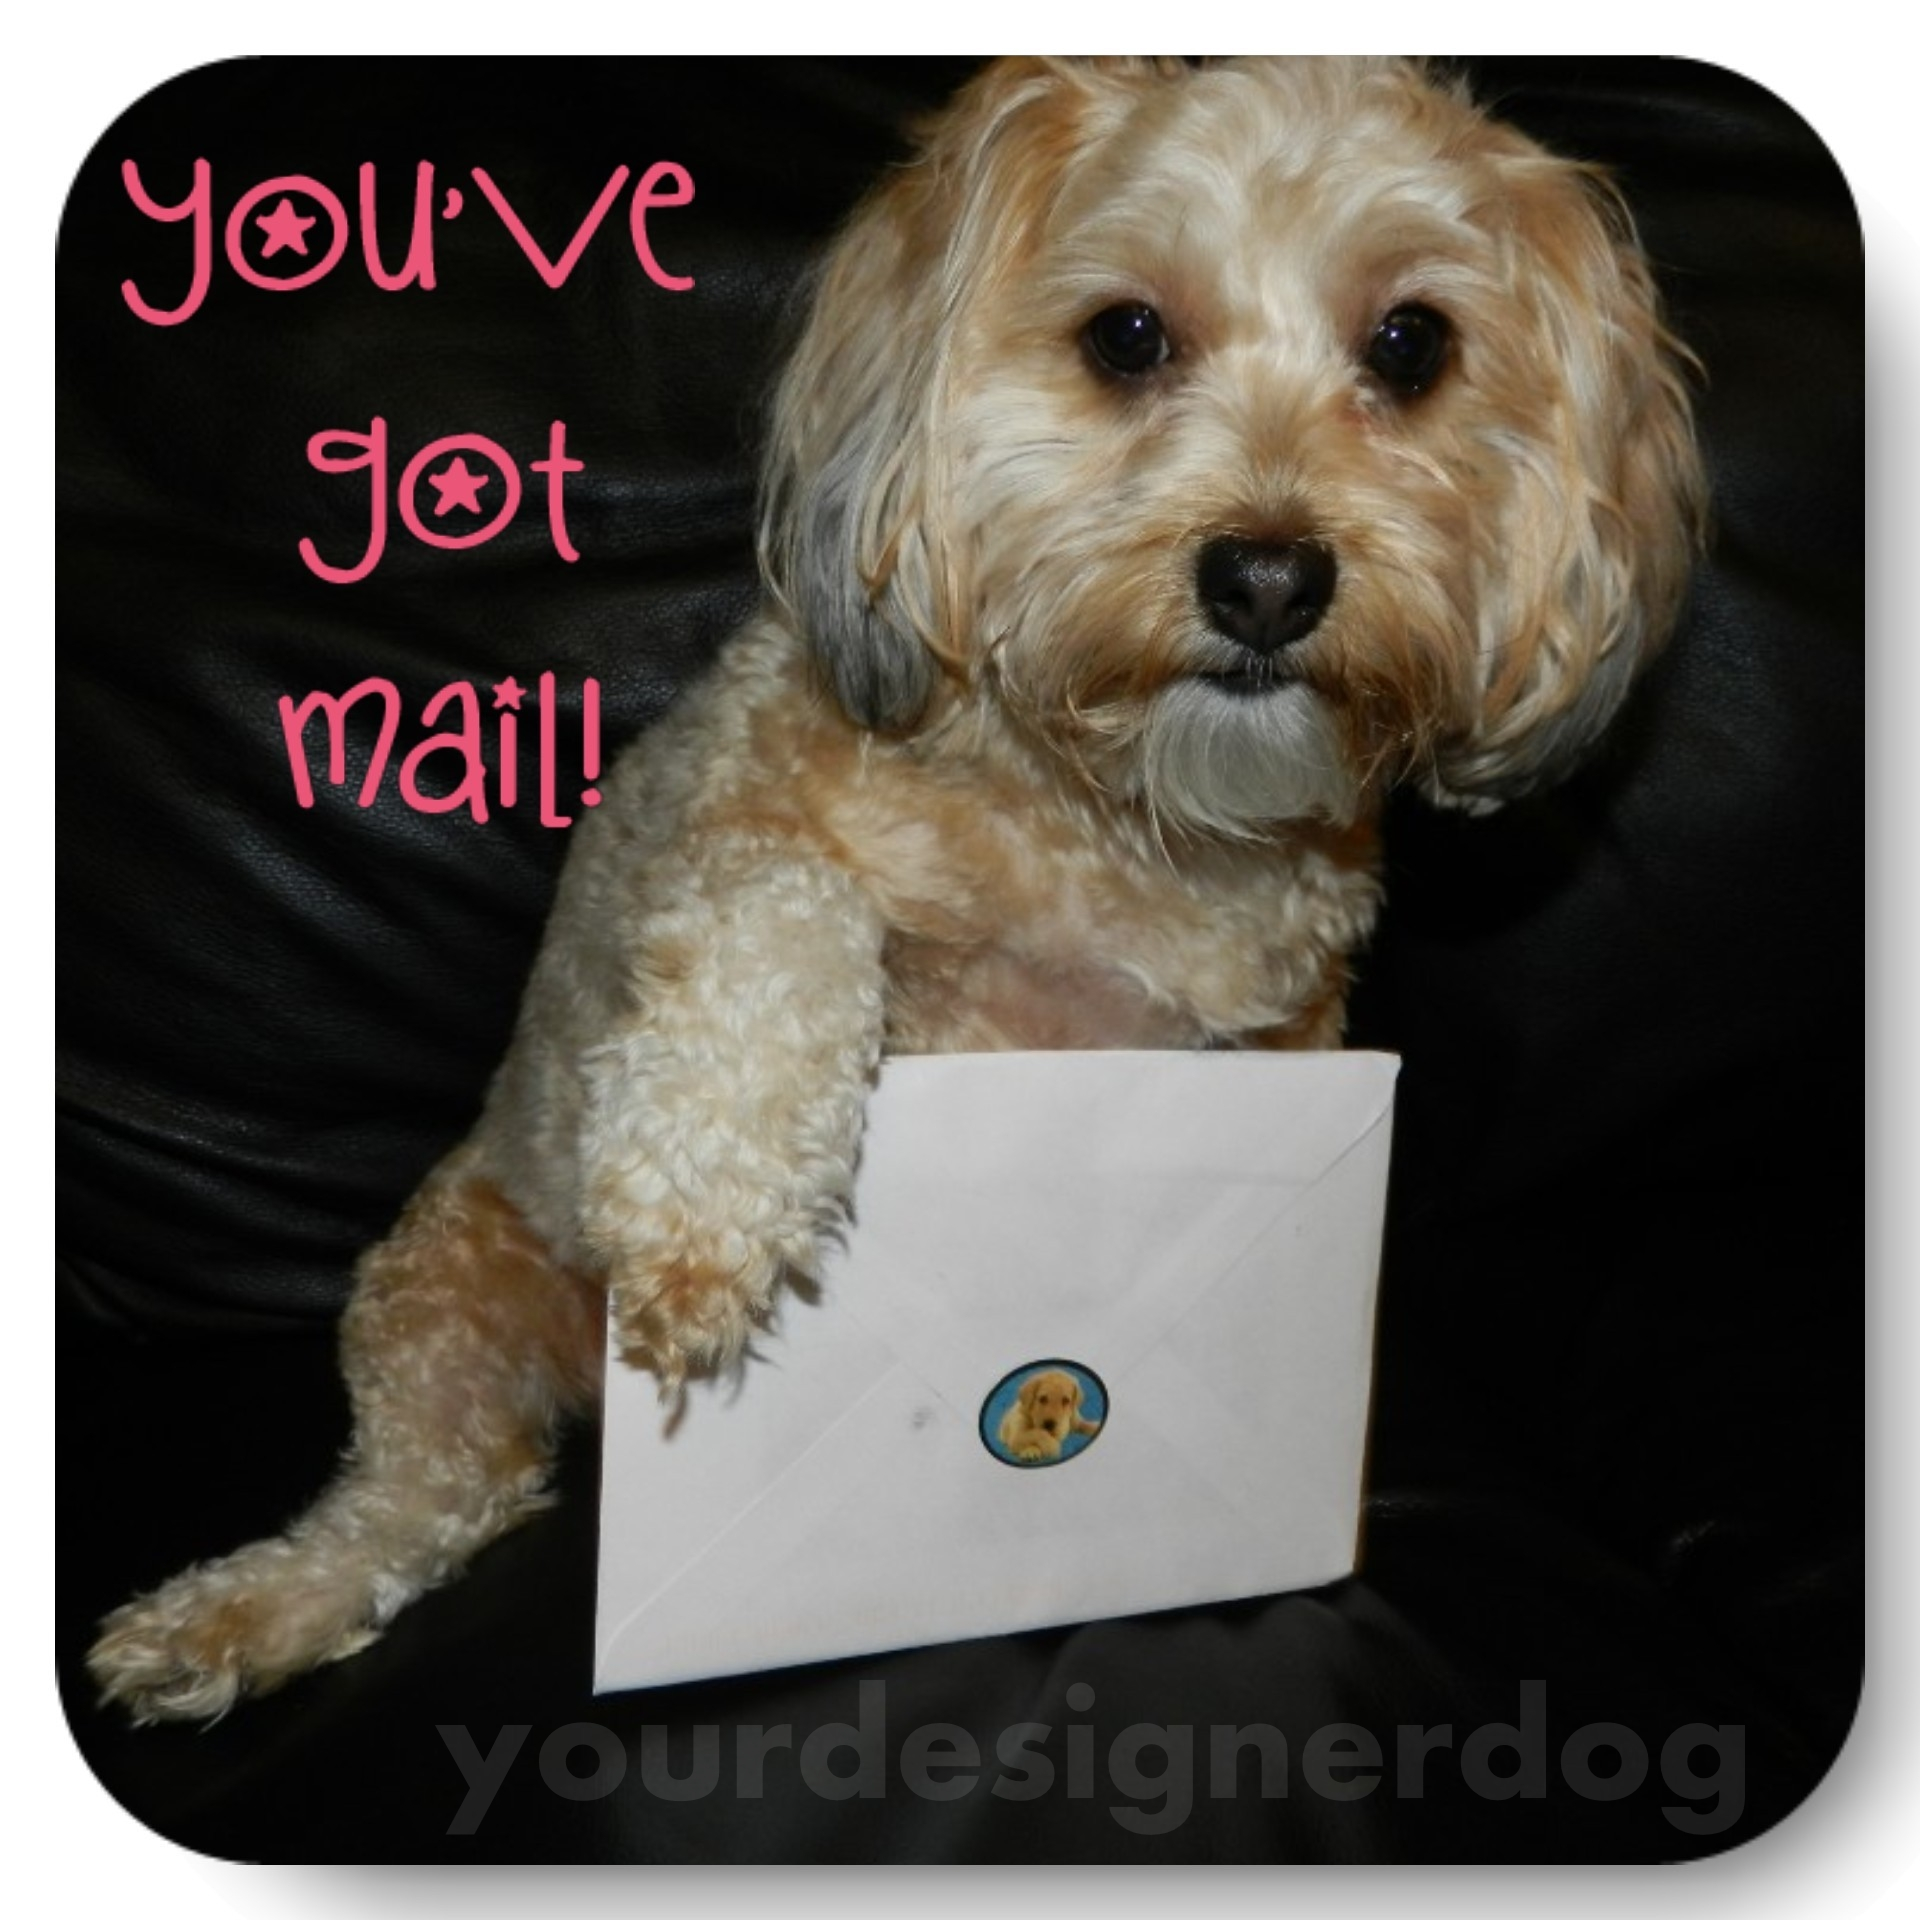 dogs, designer dogs, yorkipoo, yorkie poo, email, envelope